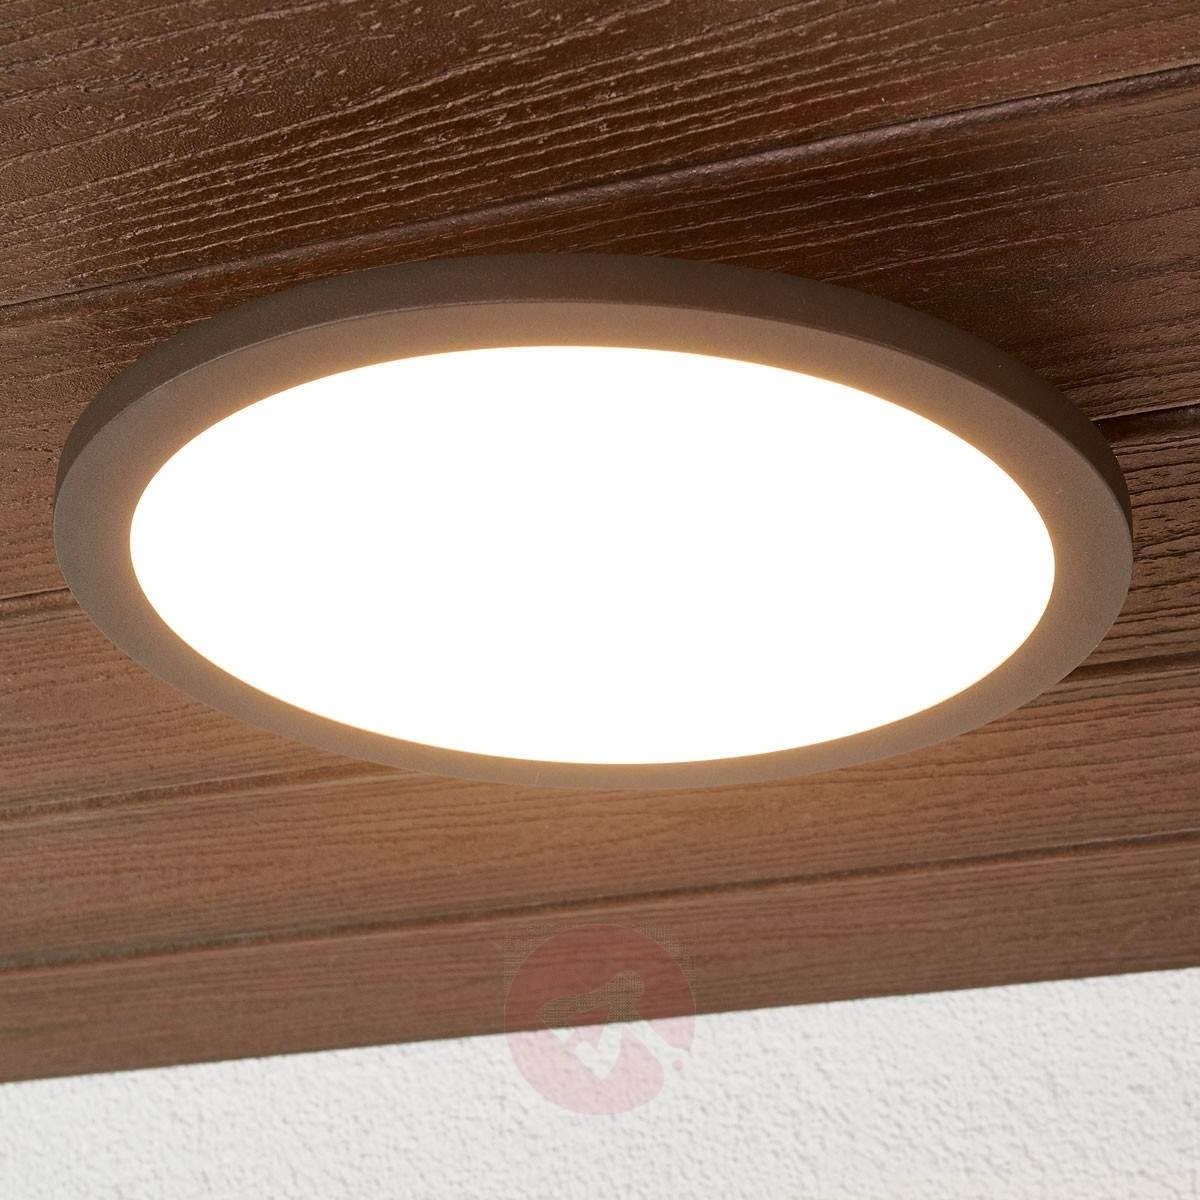 Famous Outdoor Ceiling Sensor Lights Pertaining To Outdoor Ceiling Sensor Light – Outdoor Designs (View 15 of 20)